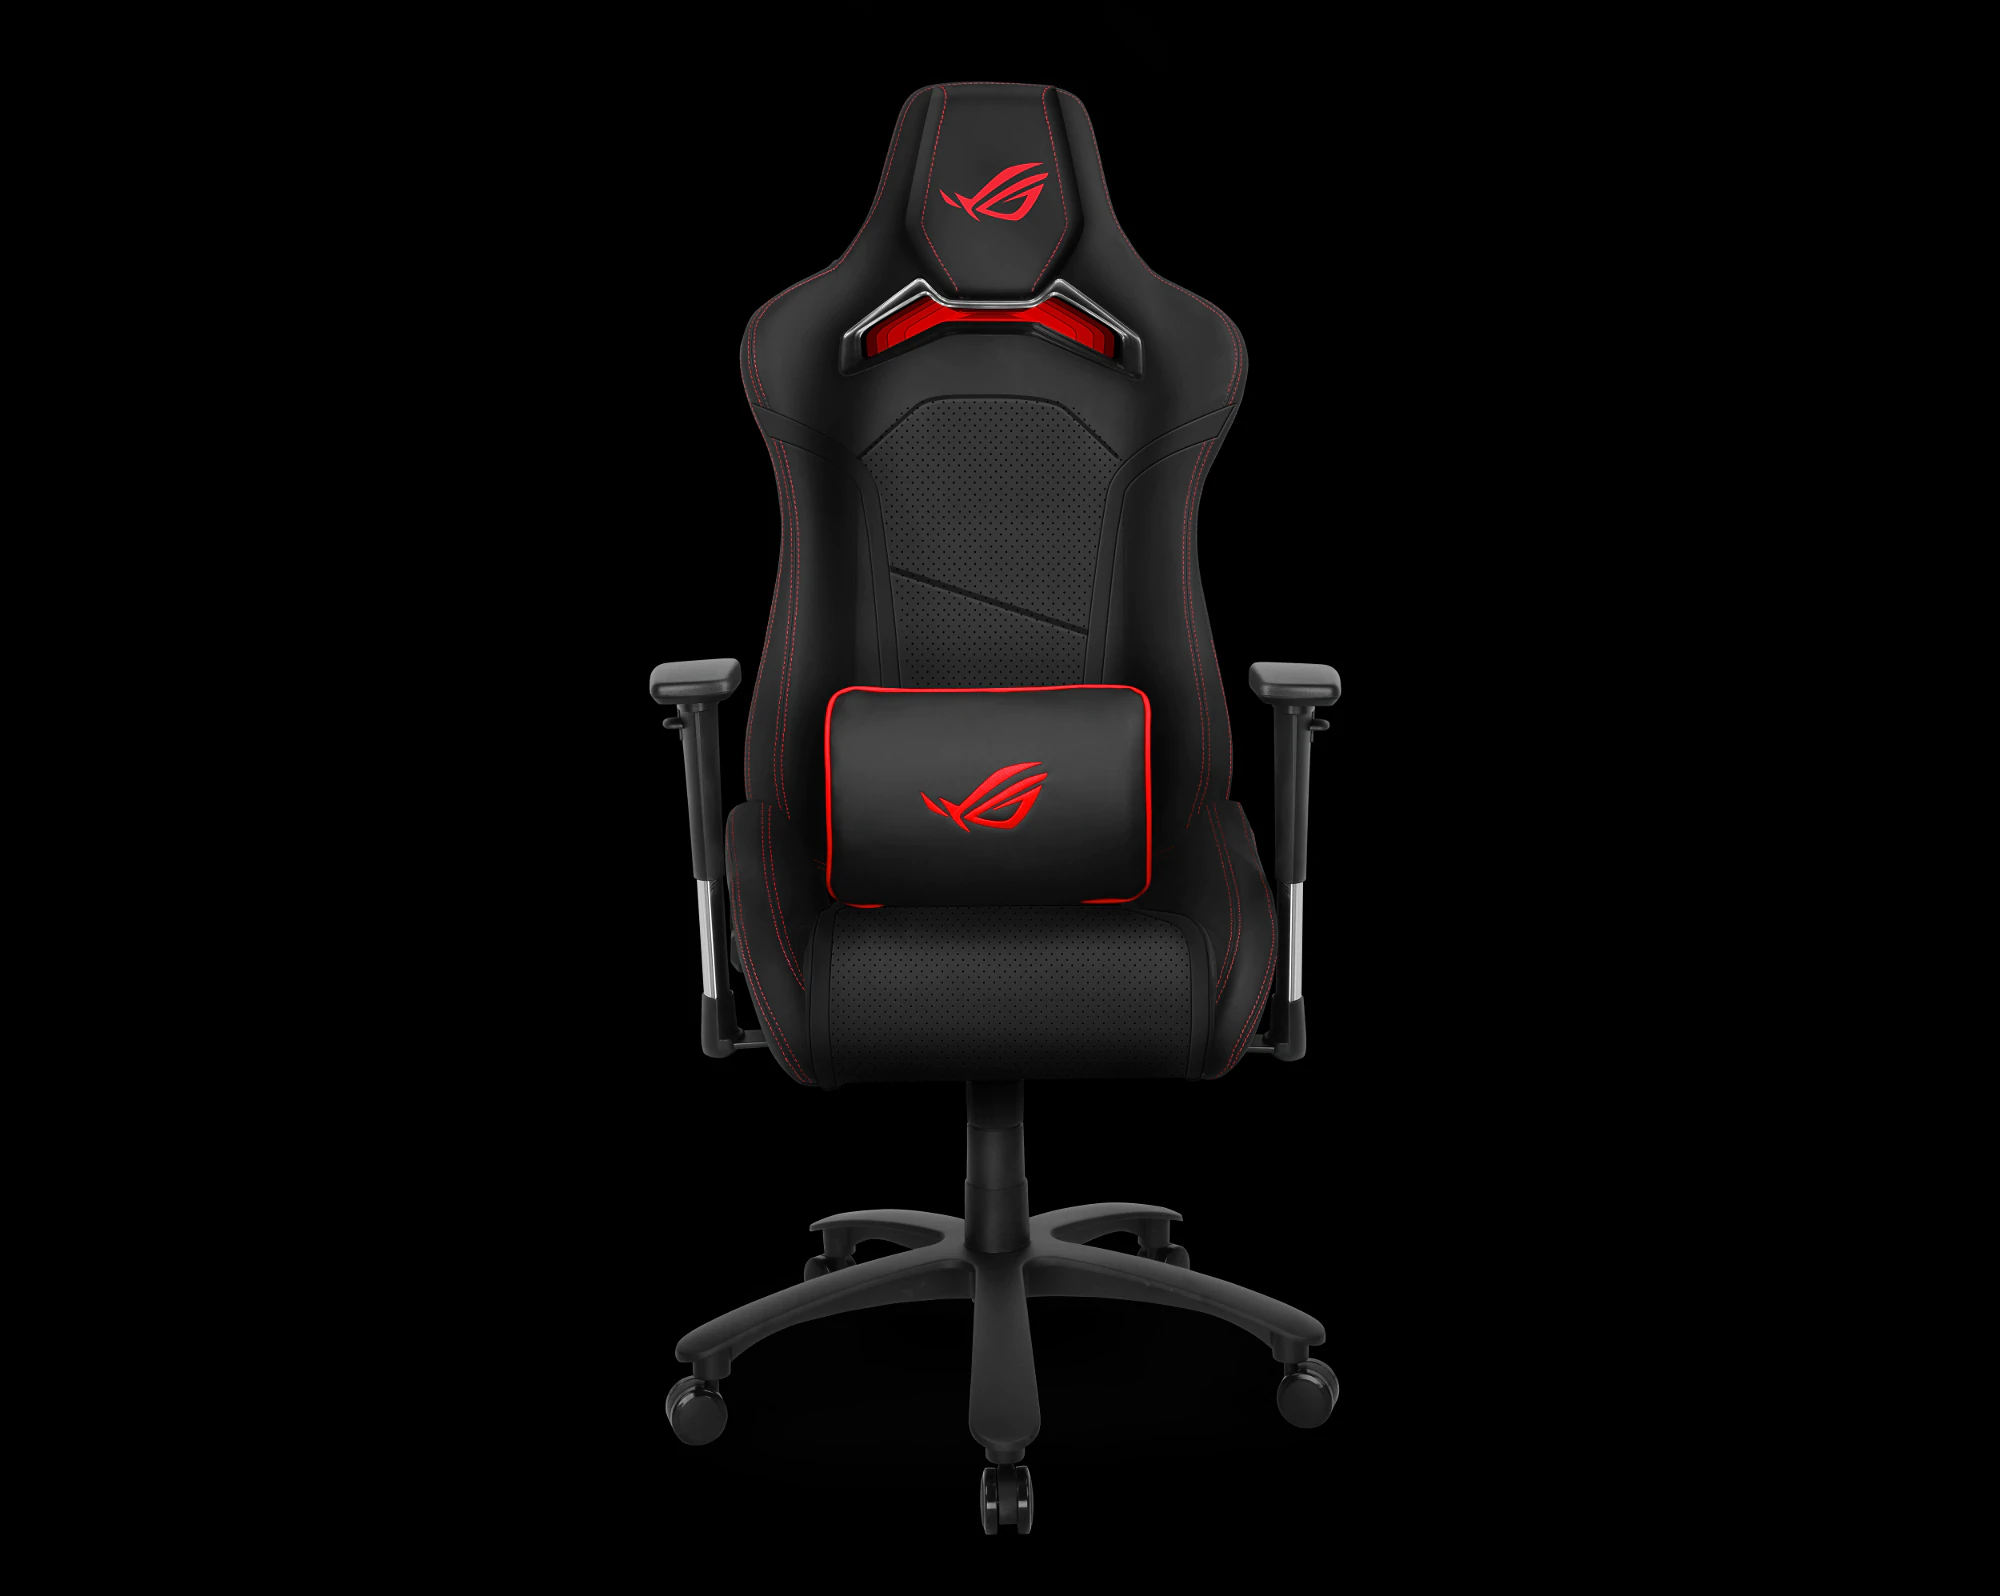 Admirable The Asus Rog Chariot Is A Gaming Chair With Rgb Lighting Short Links Chair Design For Home Short Linksinfo